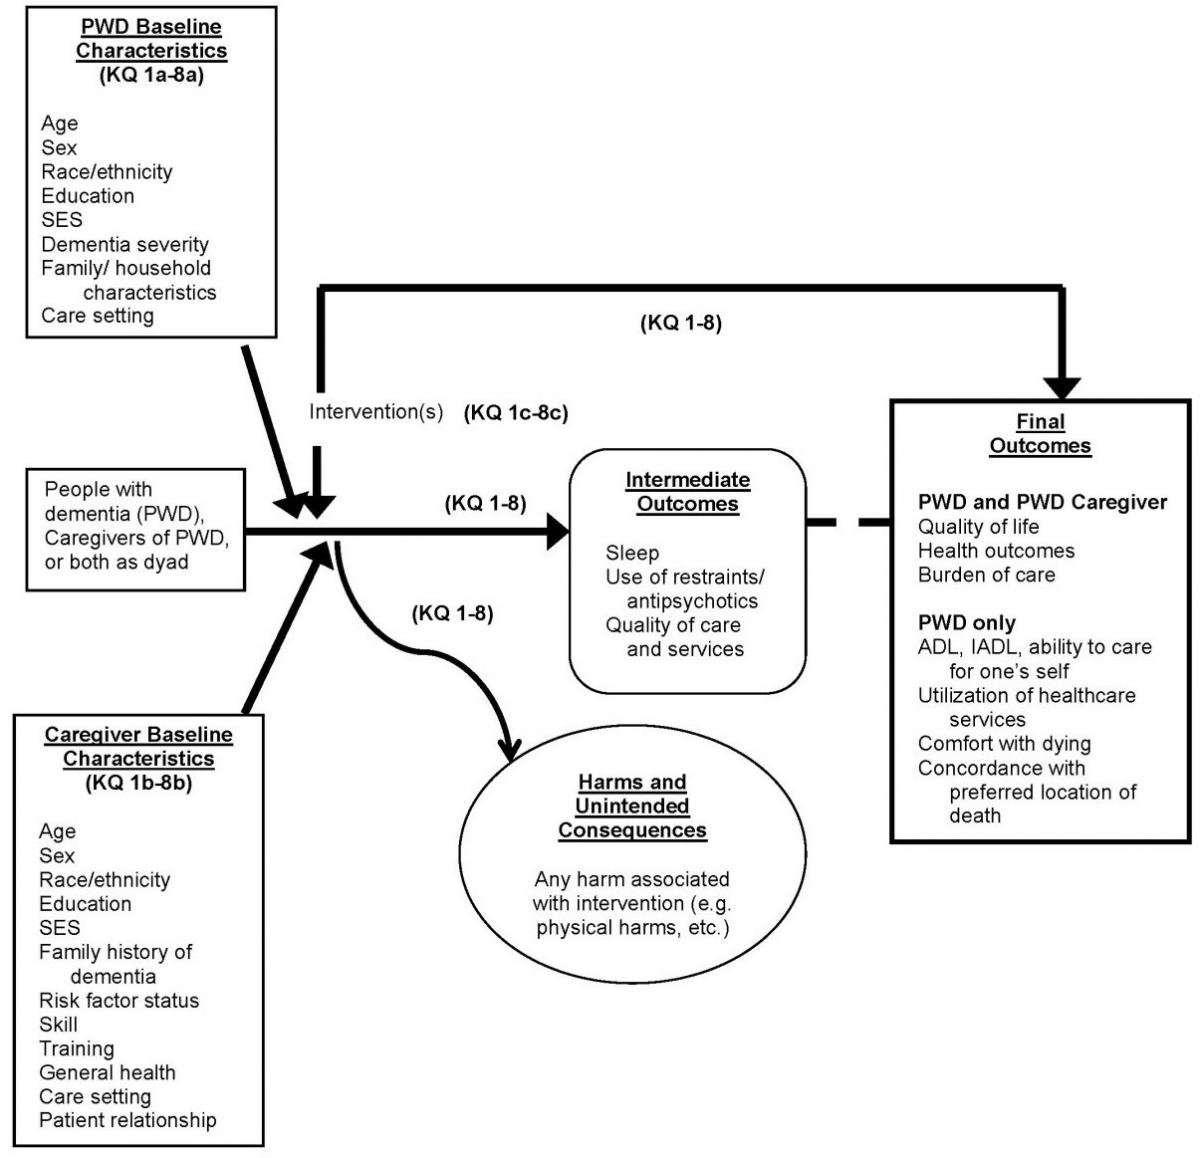 Figure 1 is the analytical framework describing the flow of people with dementia (PWD) and their caregivers through care intervention processes. PWD and caregivers receive nondrug care interventions leading to intermediate outcomes usch as improvements in sleep, quality of care and services, and use of restraints or antipsychotics for PWD. Interventions may have associated harms or unintended consequences. Final health outcomes for both caregivers and PWD include improvements in quality of life or other health outcomes. In addition PWD outcomes might include improvements in function, utilizaiton of healthcare services, and hospice outcomes such as concordance with preferred location of death. Outcomes may differ by PWD baseline characteristics (such as age, sex, education, or care setting) or caregiver baseline characteristics (such as age, sex, skill and training, general health, or patient relationship).